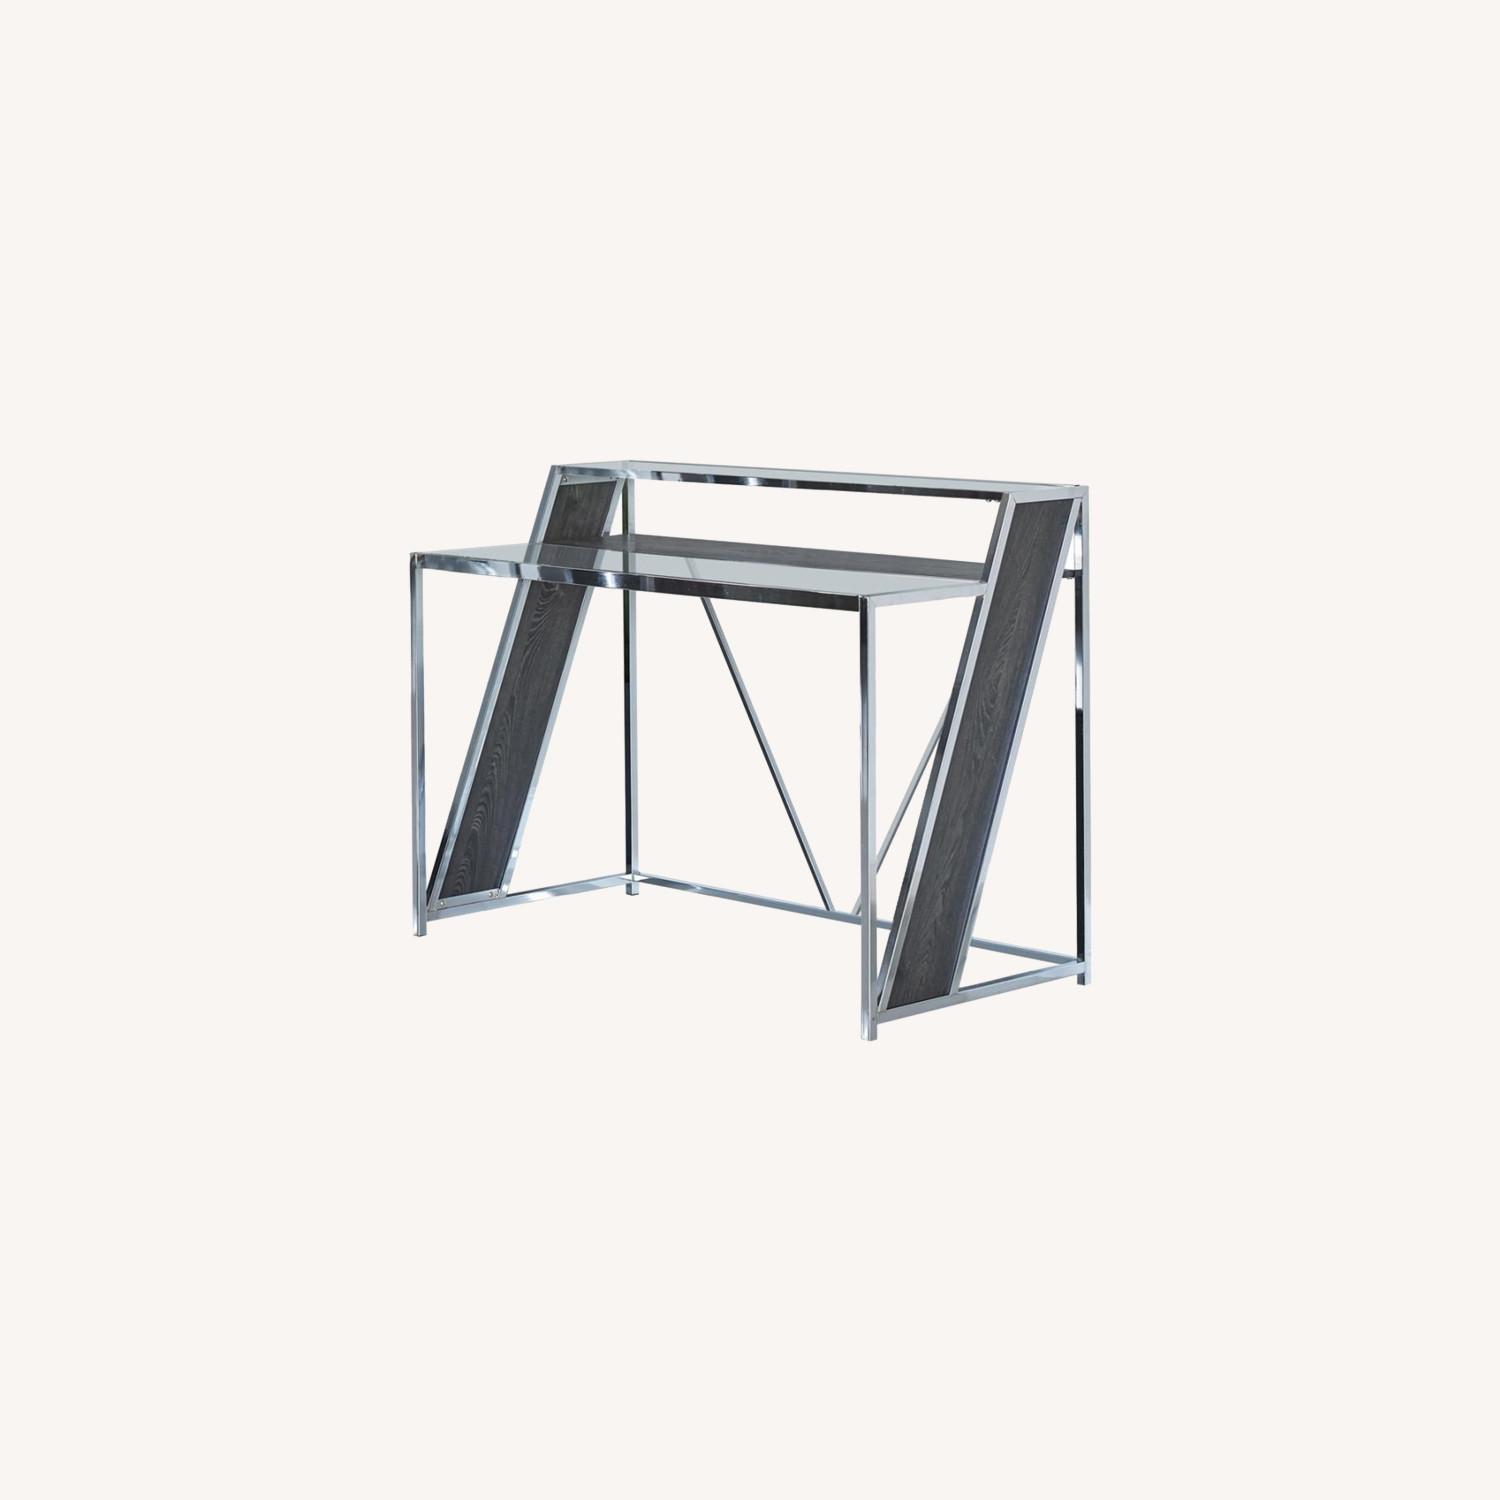 Writing Desk In Chrome W/ Clear Tempered Glass  - image-3